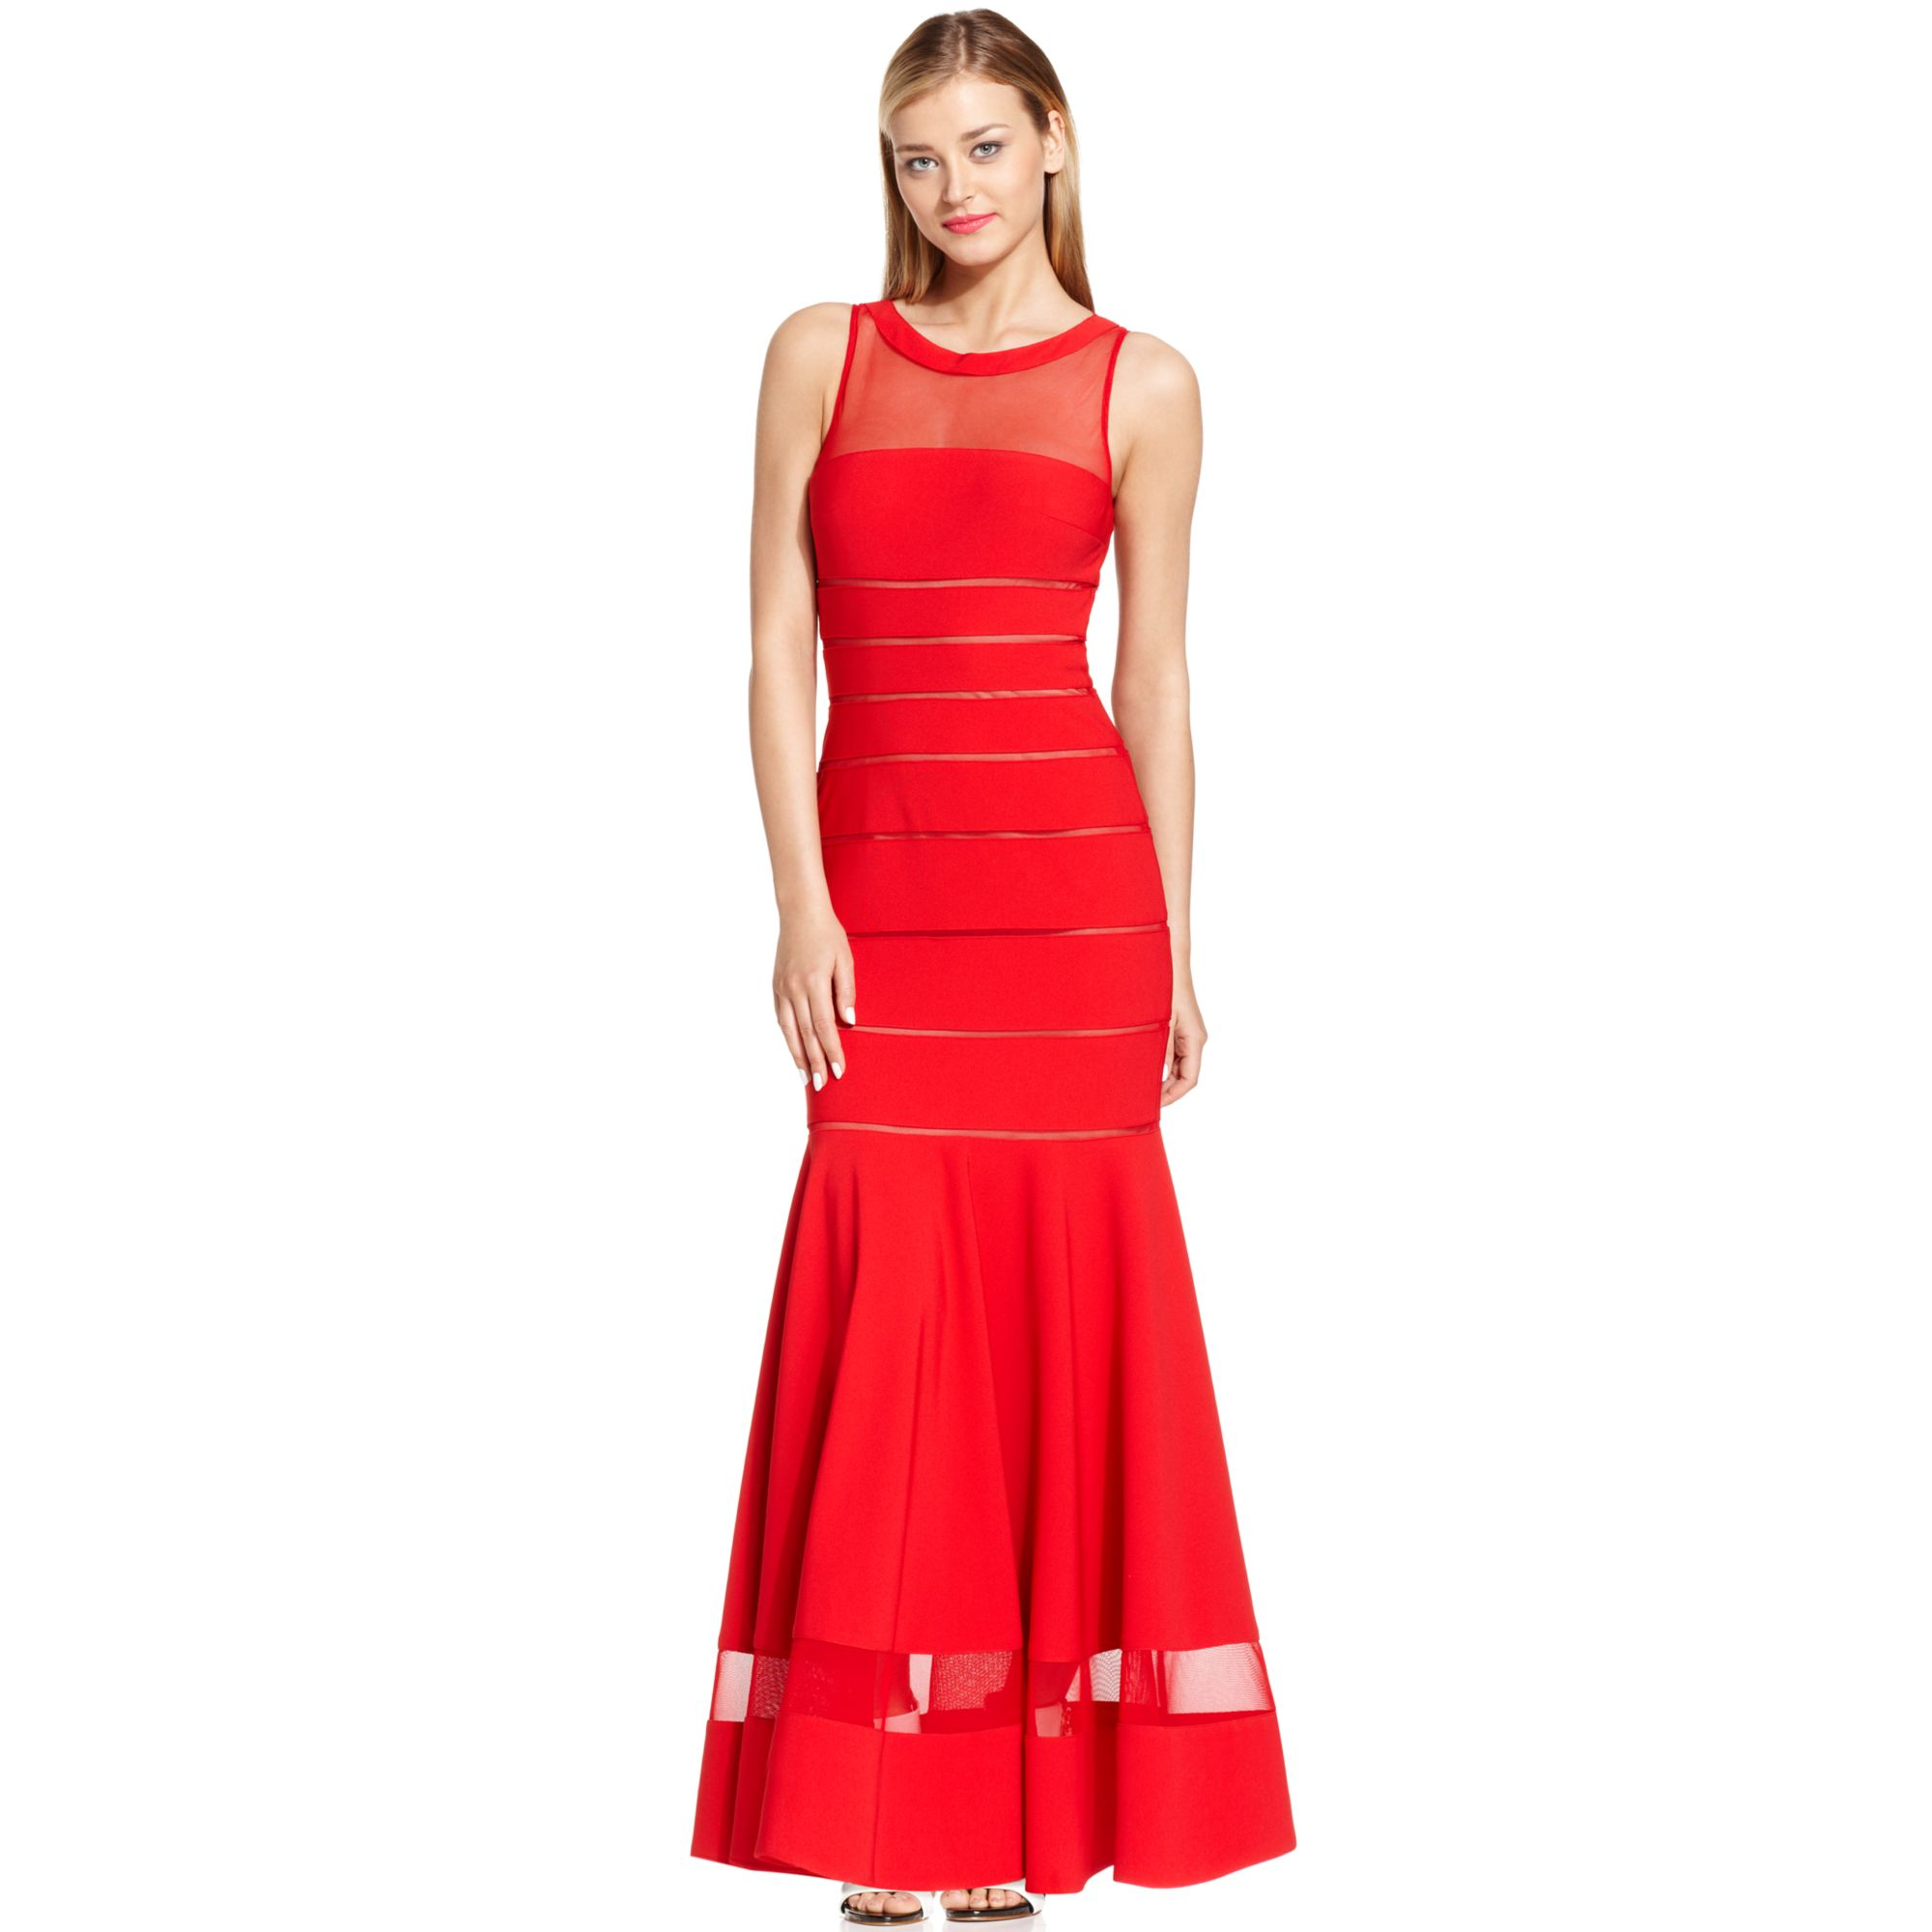 Js collections illusion stripe mermaid gown in red lyst